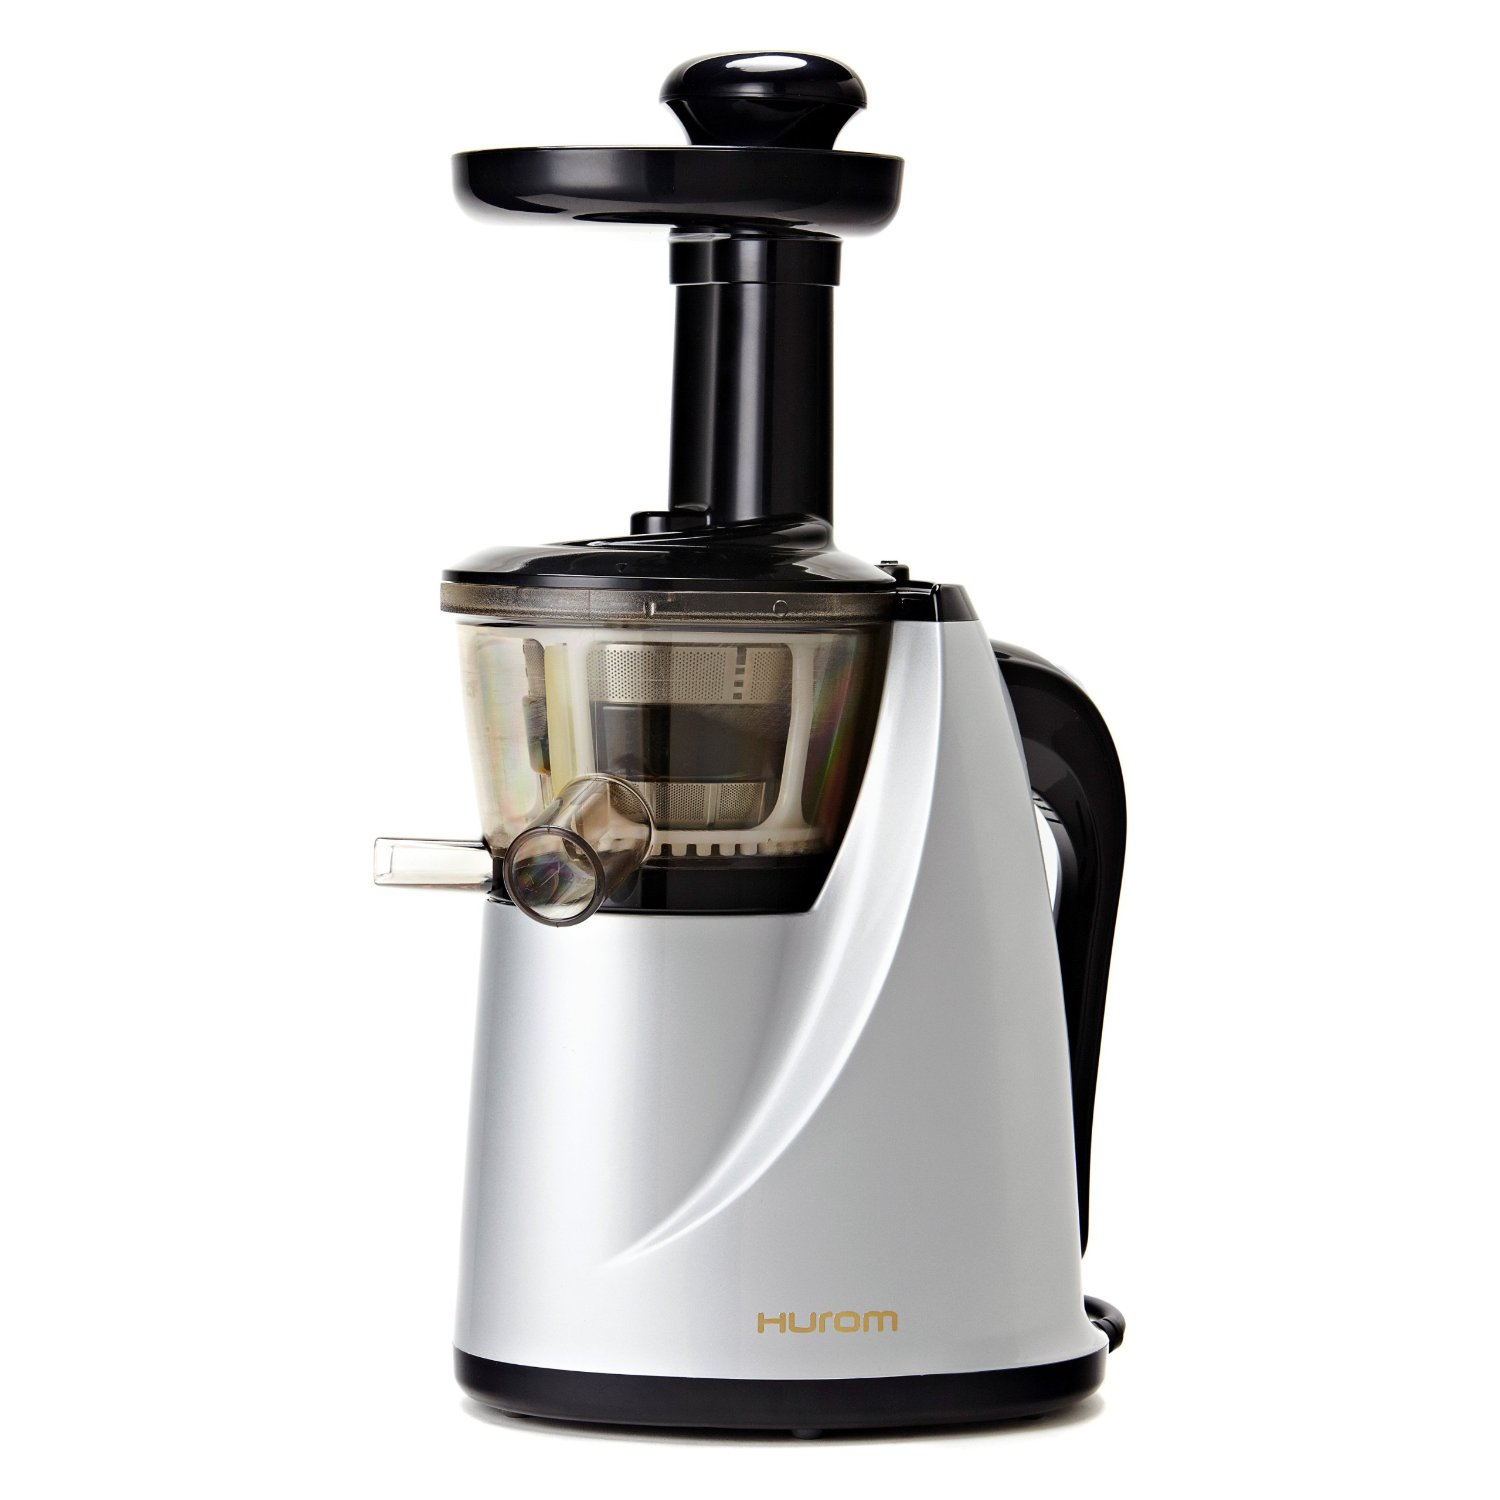 Hurom Juicer Reviews Hurom Cold Press Juicers Comparison - Best Cold Press Juicers